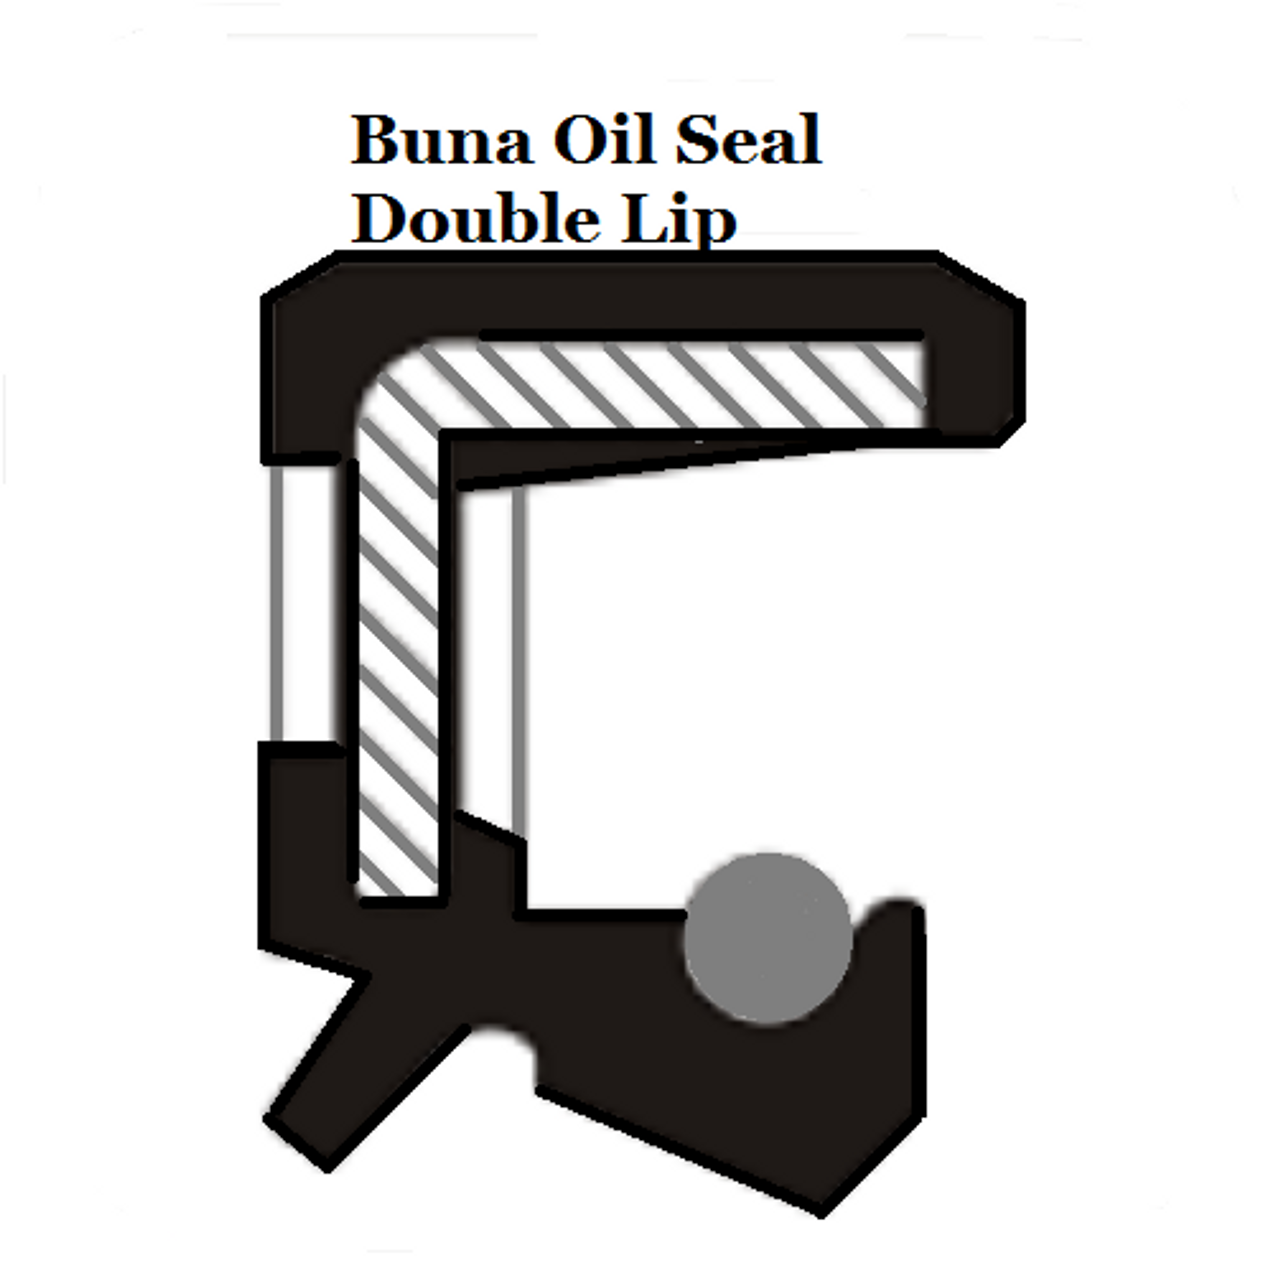 Metric Oil Shaft Seal 40 x 62 x 12mm Double Lip Price for 1 pc